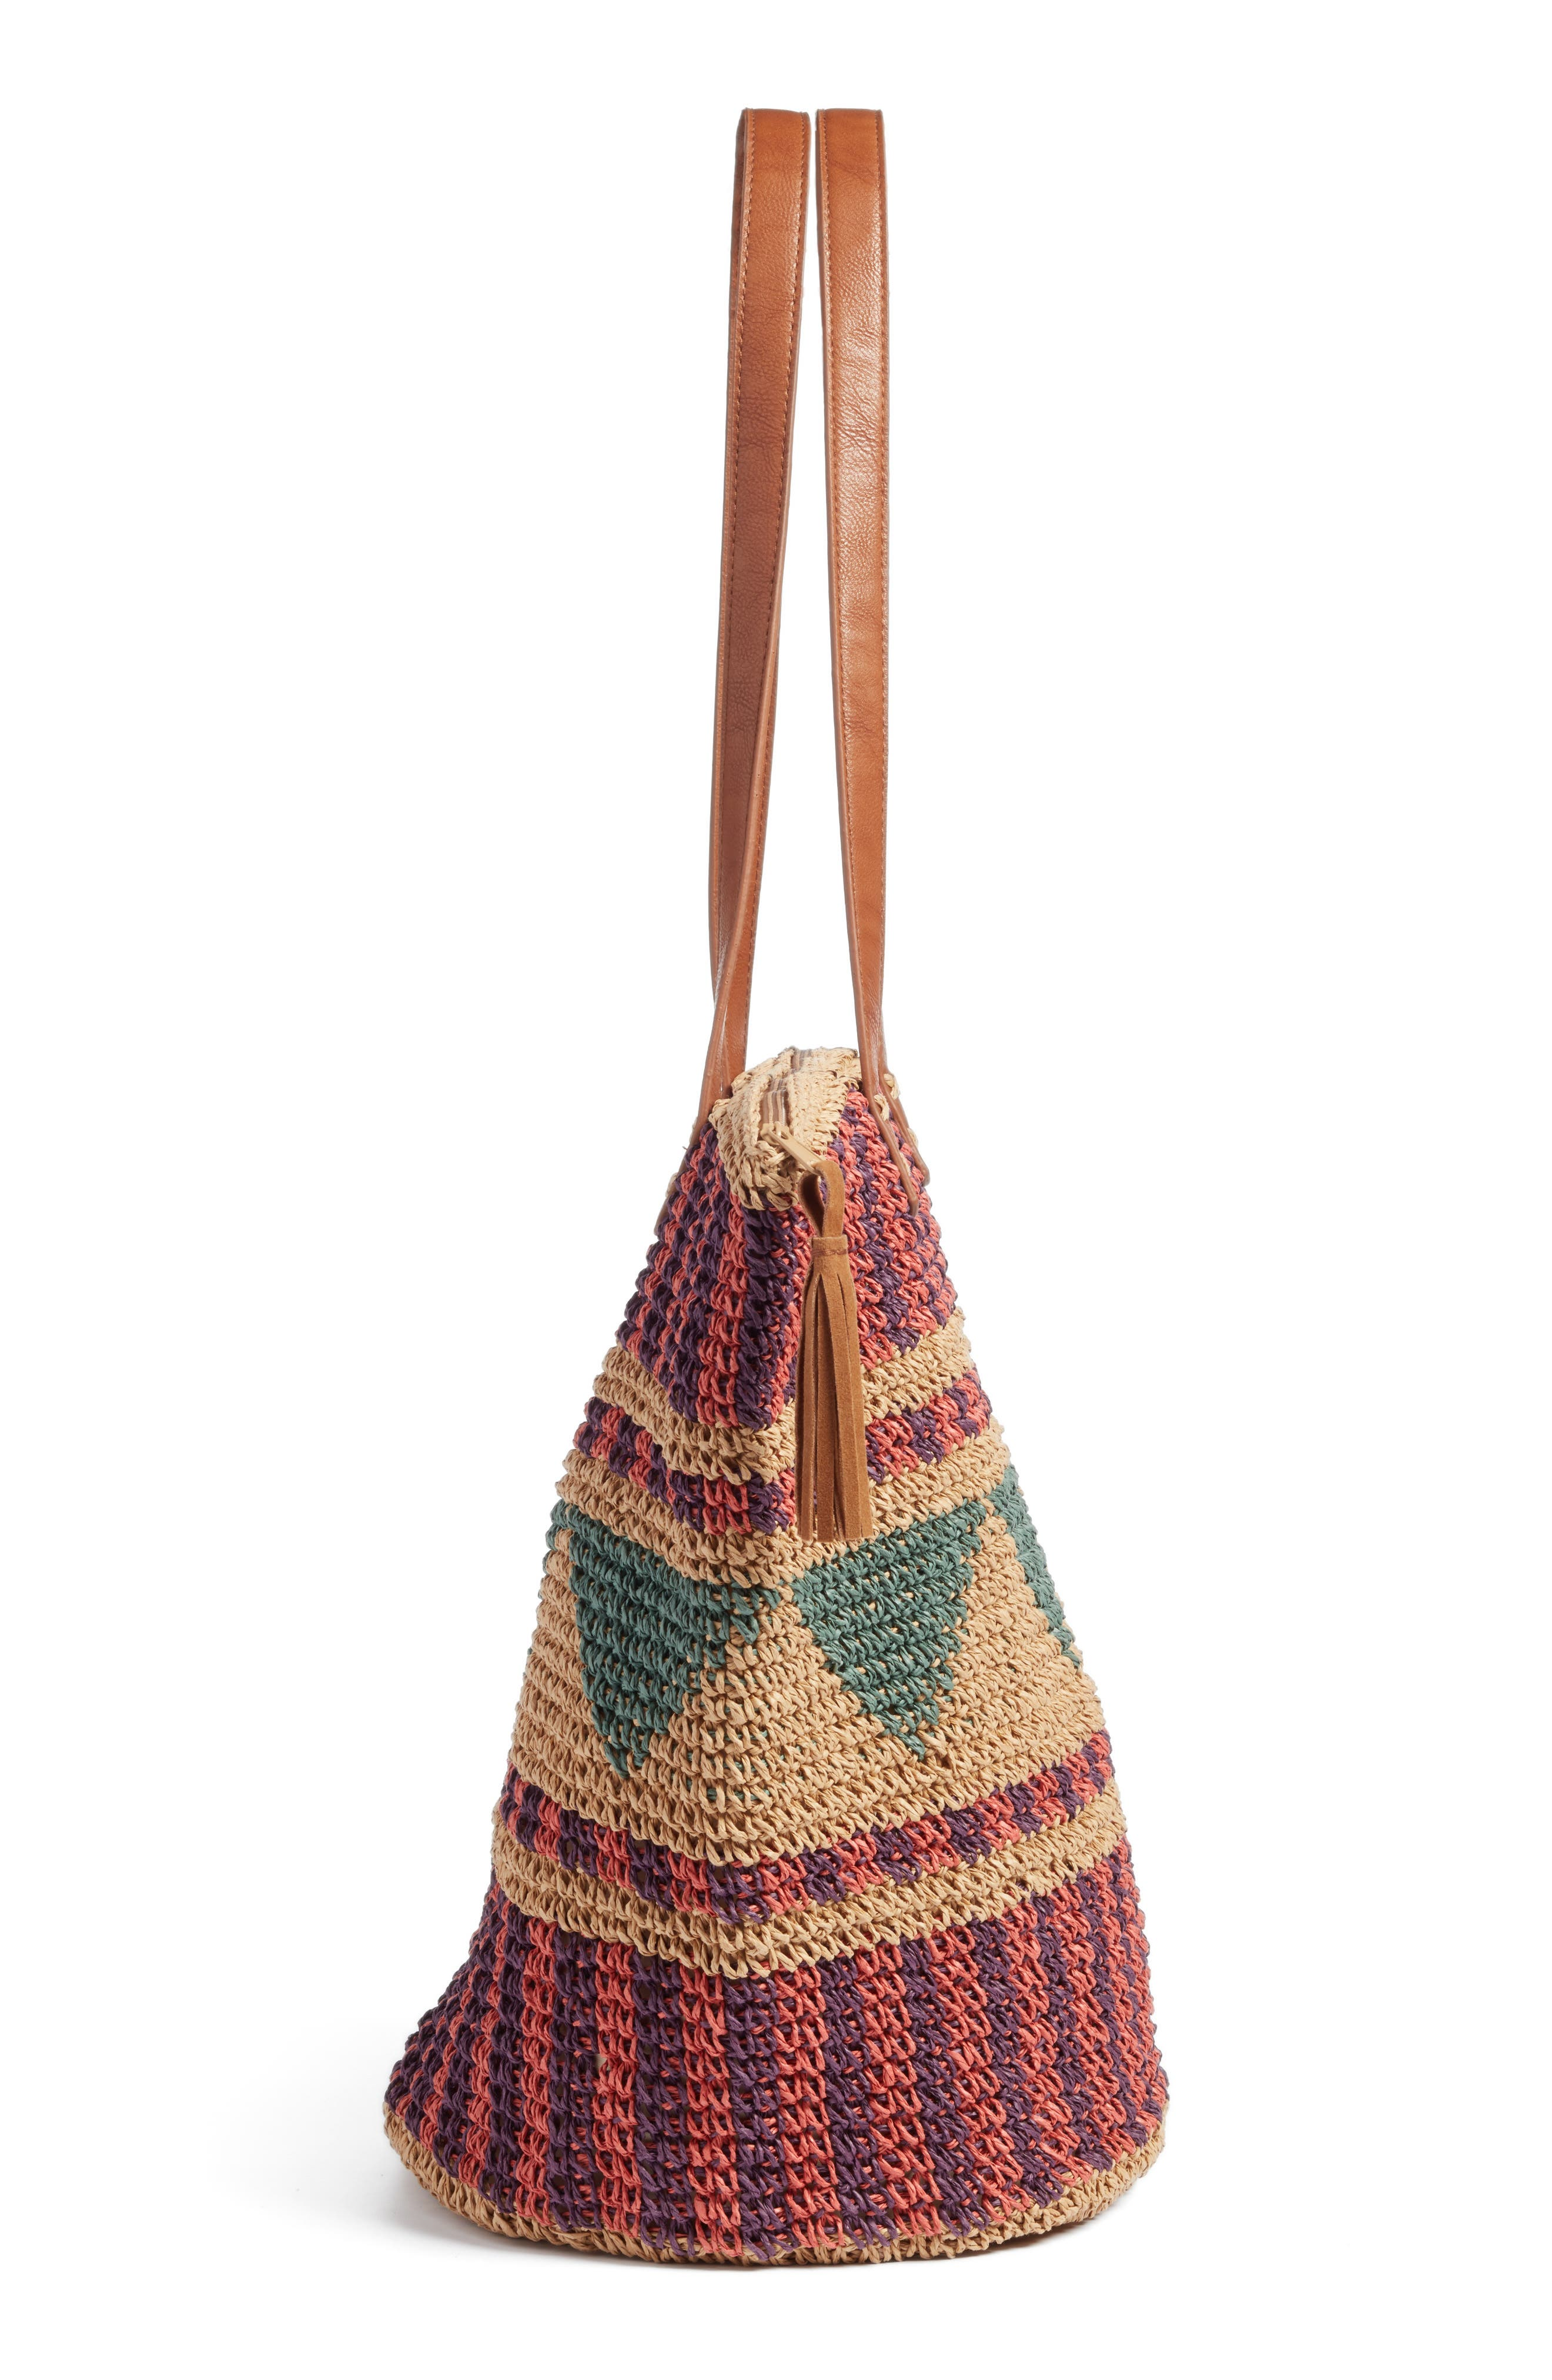 East of Dover Print Straw Tote,                             Alternate thumbnail 5, color,                             600